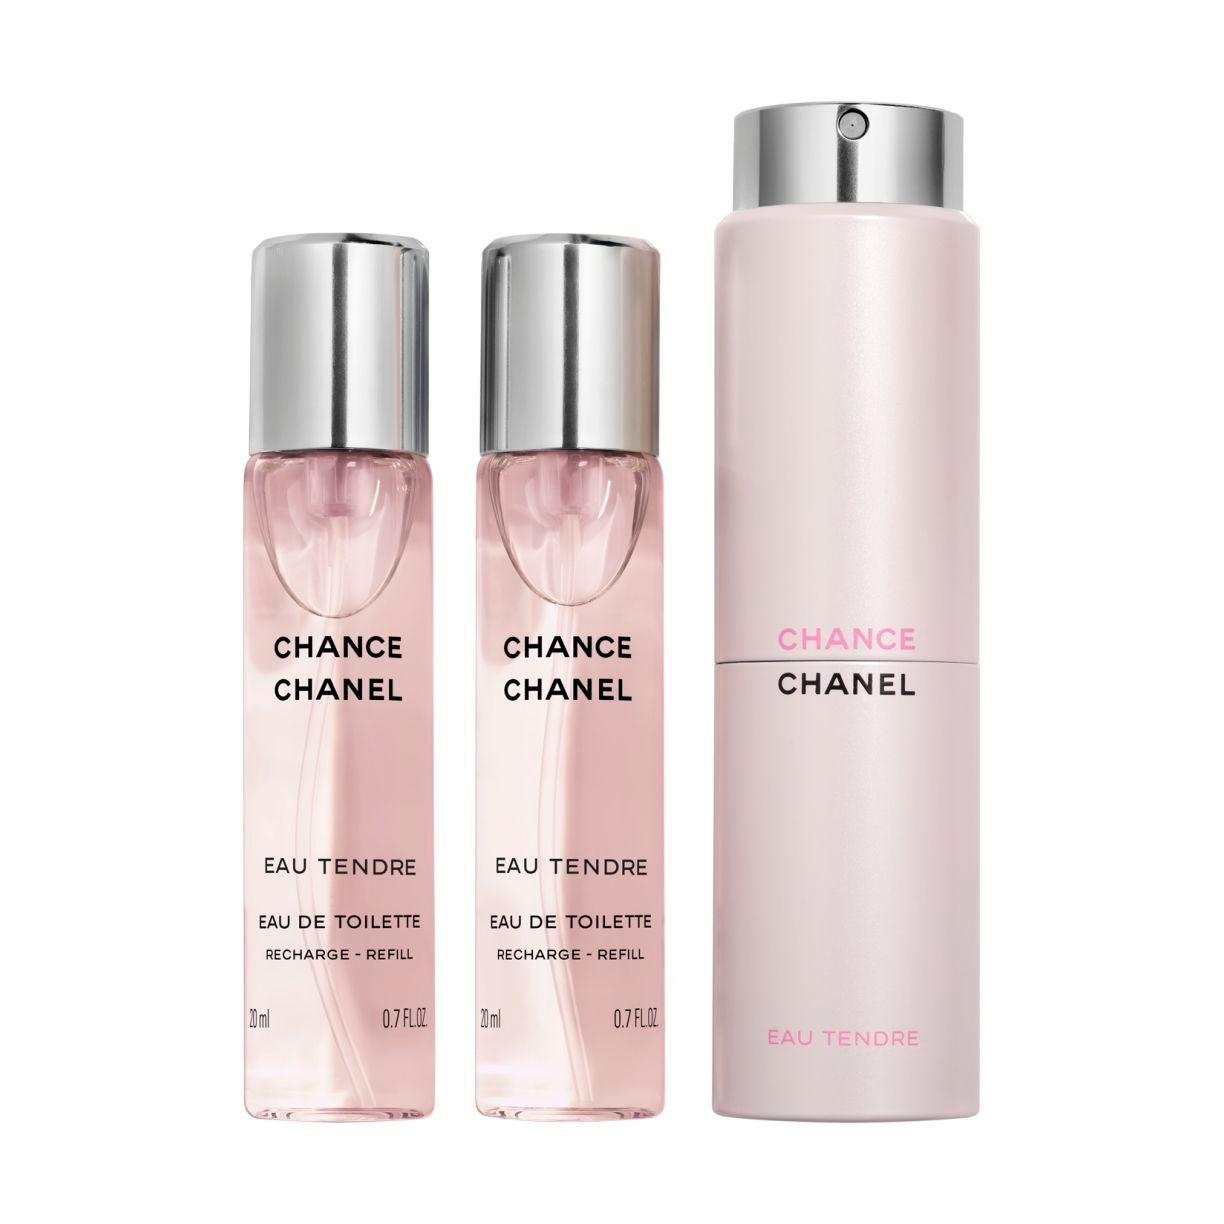 CHANCE EAU TENDRE ТУАЛЕТНАЯ ВОДА TWIST AND SPRAY 3x20ml